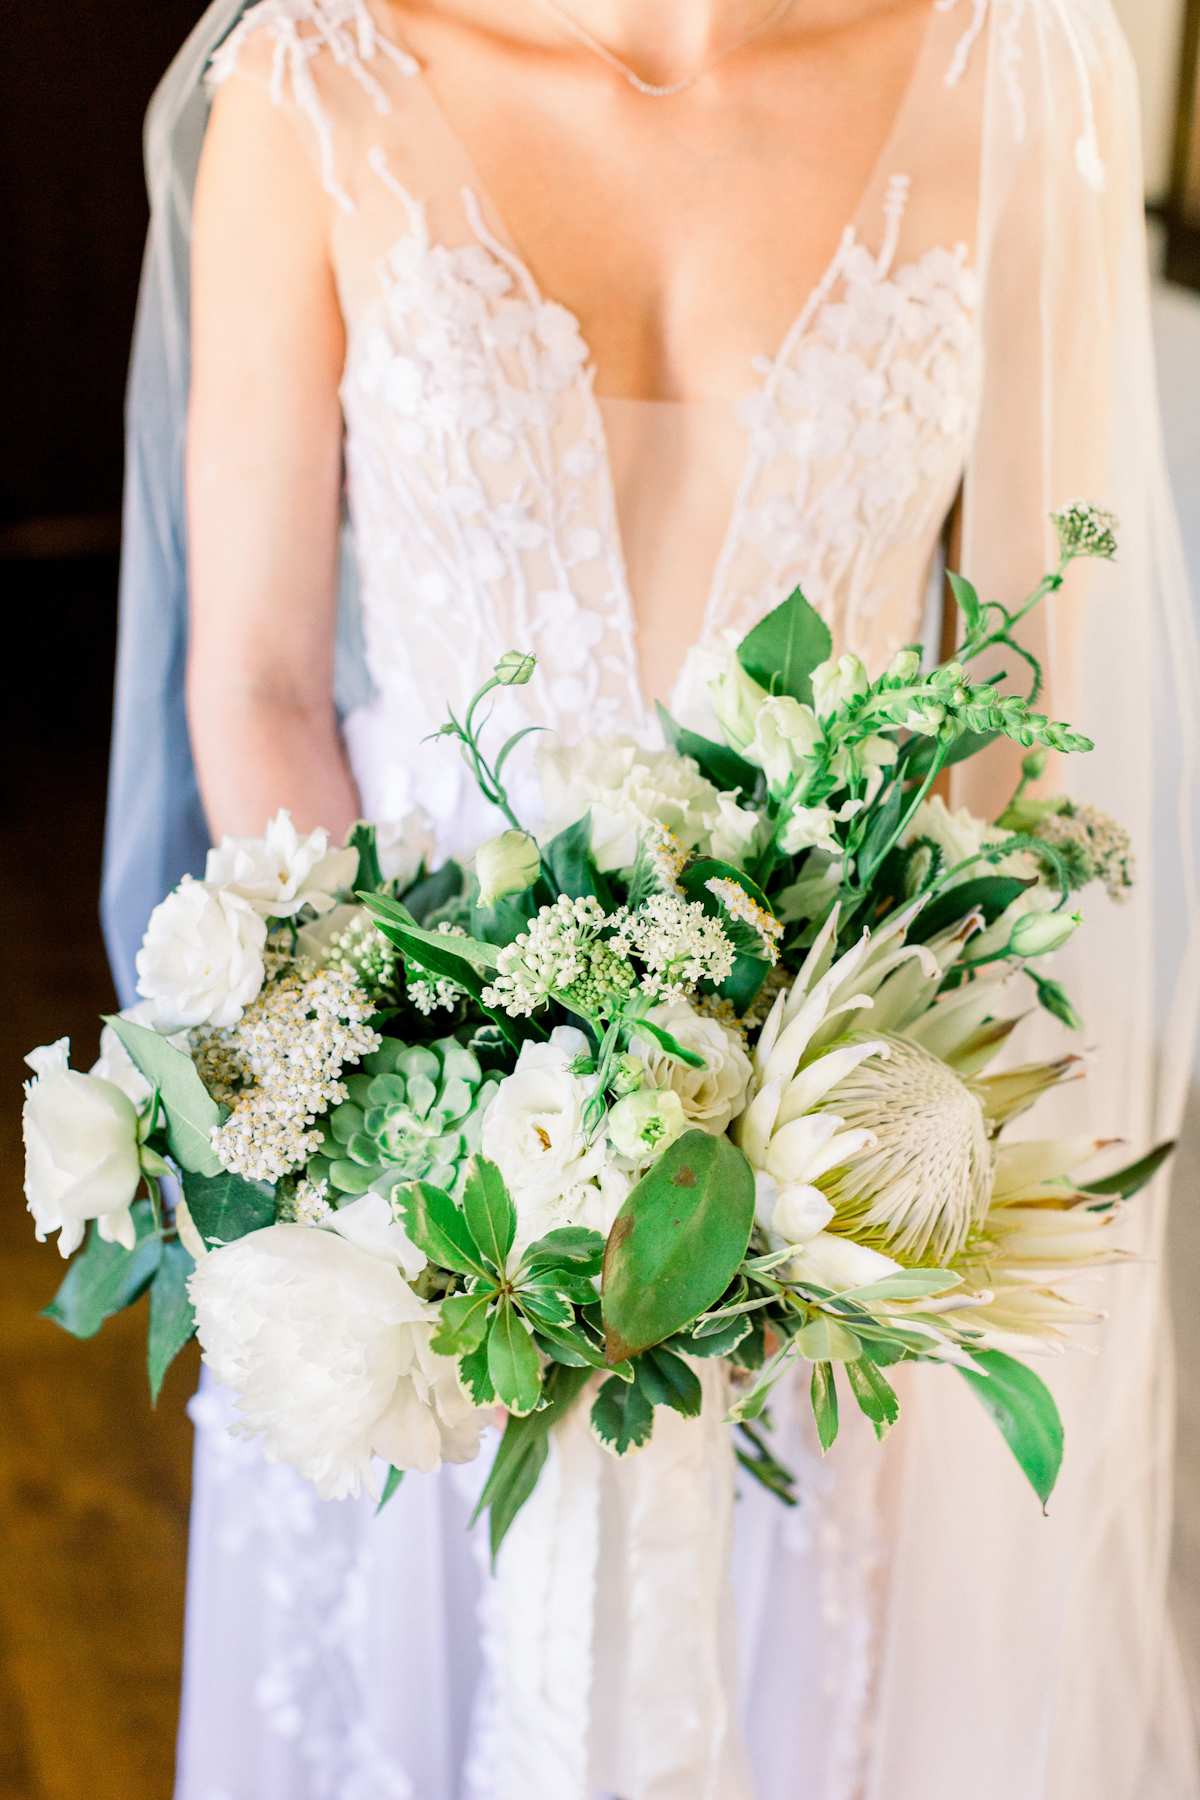 Blue Hill at Stone Barns wedding bouquet in white and green